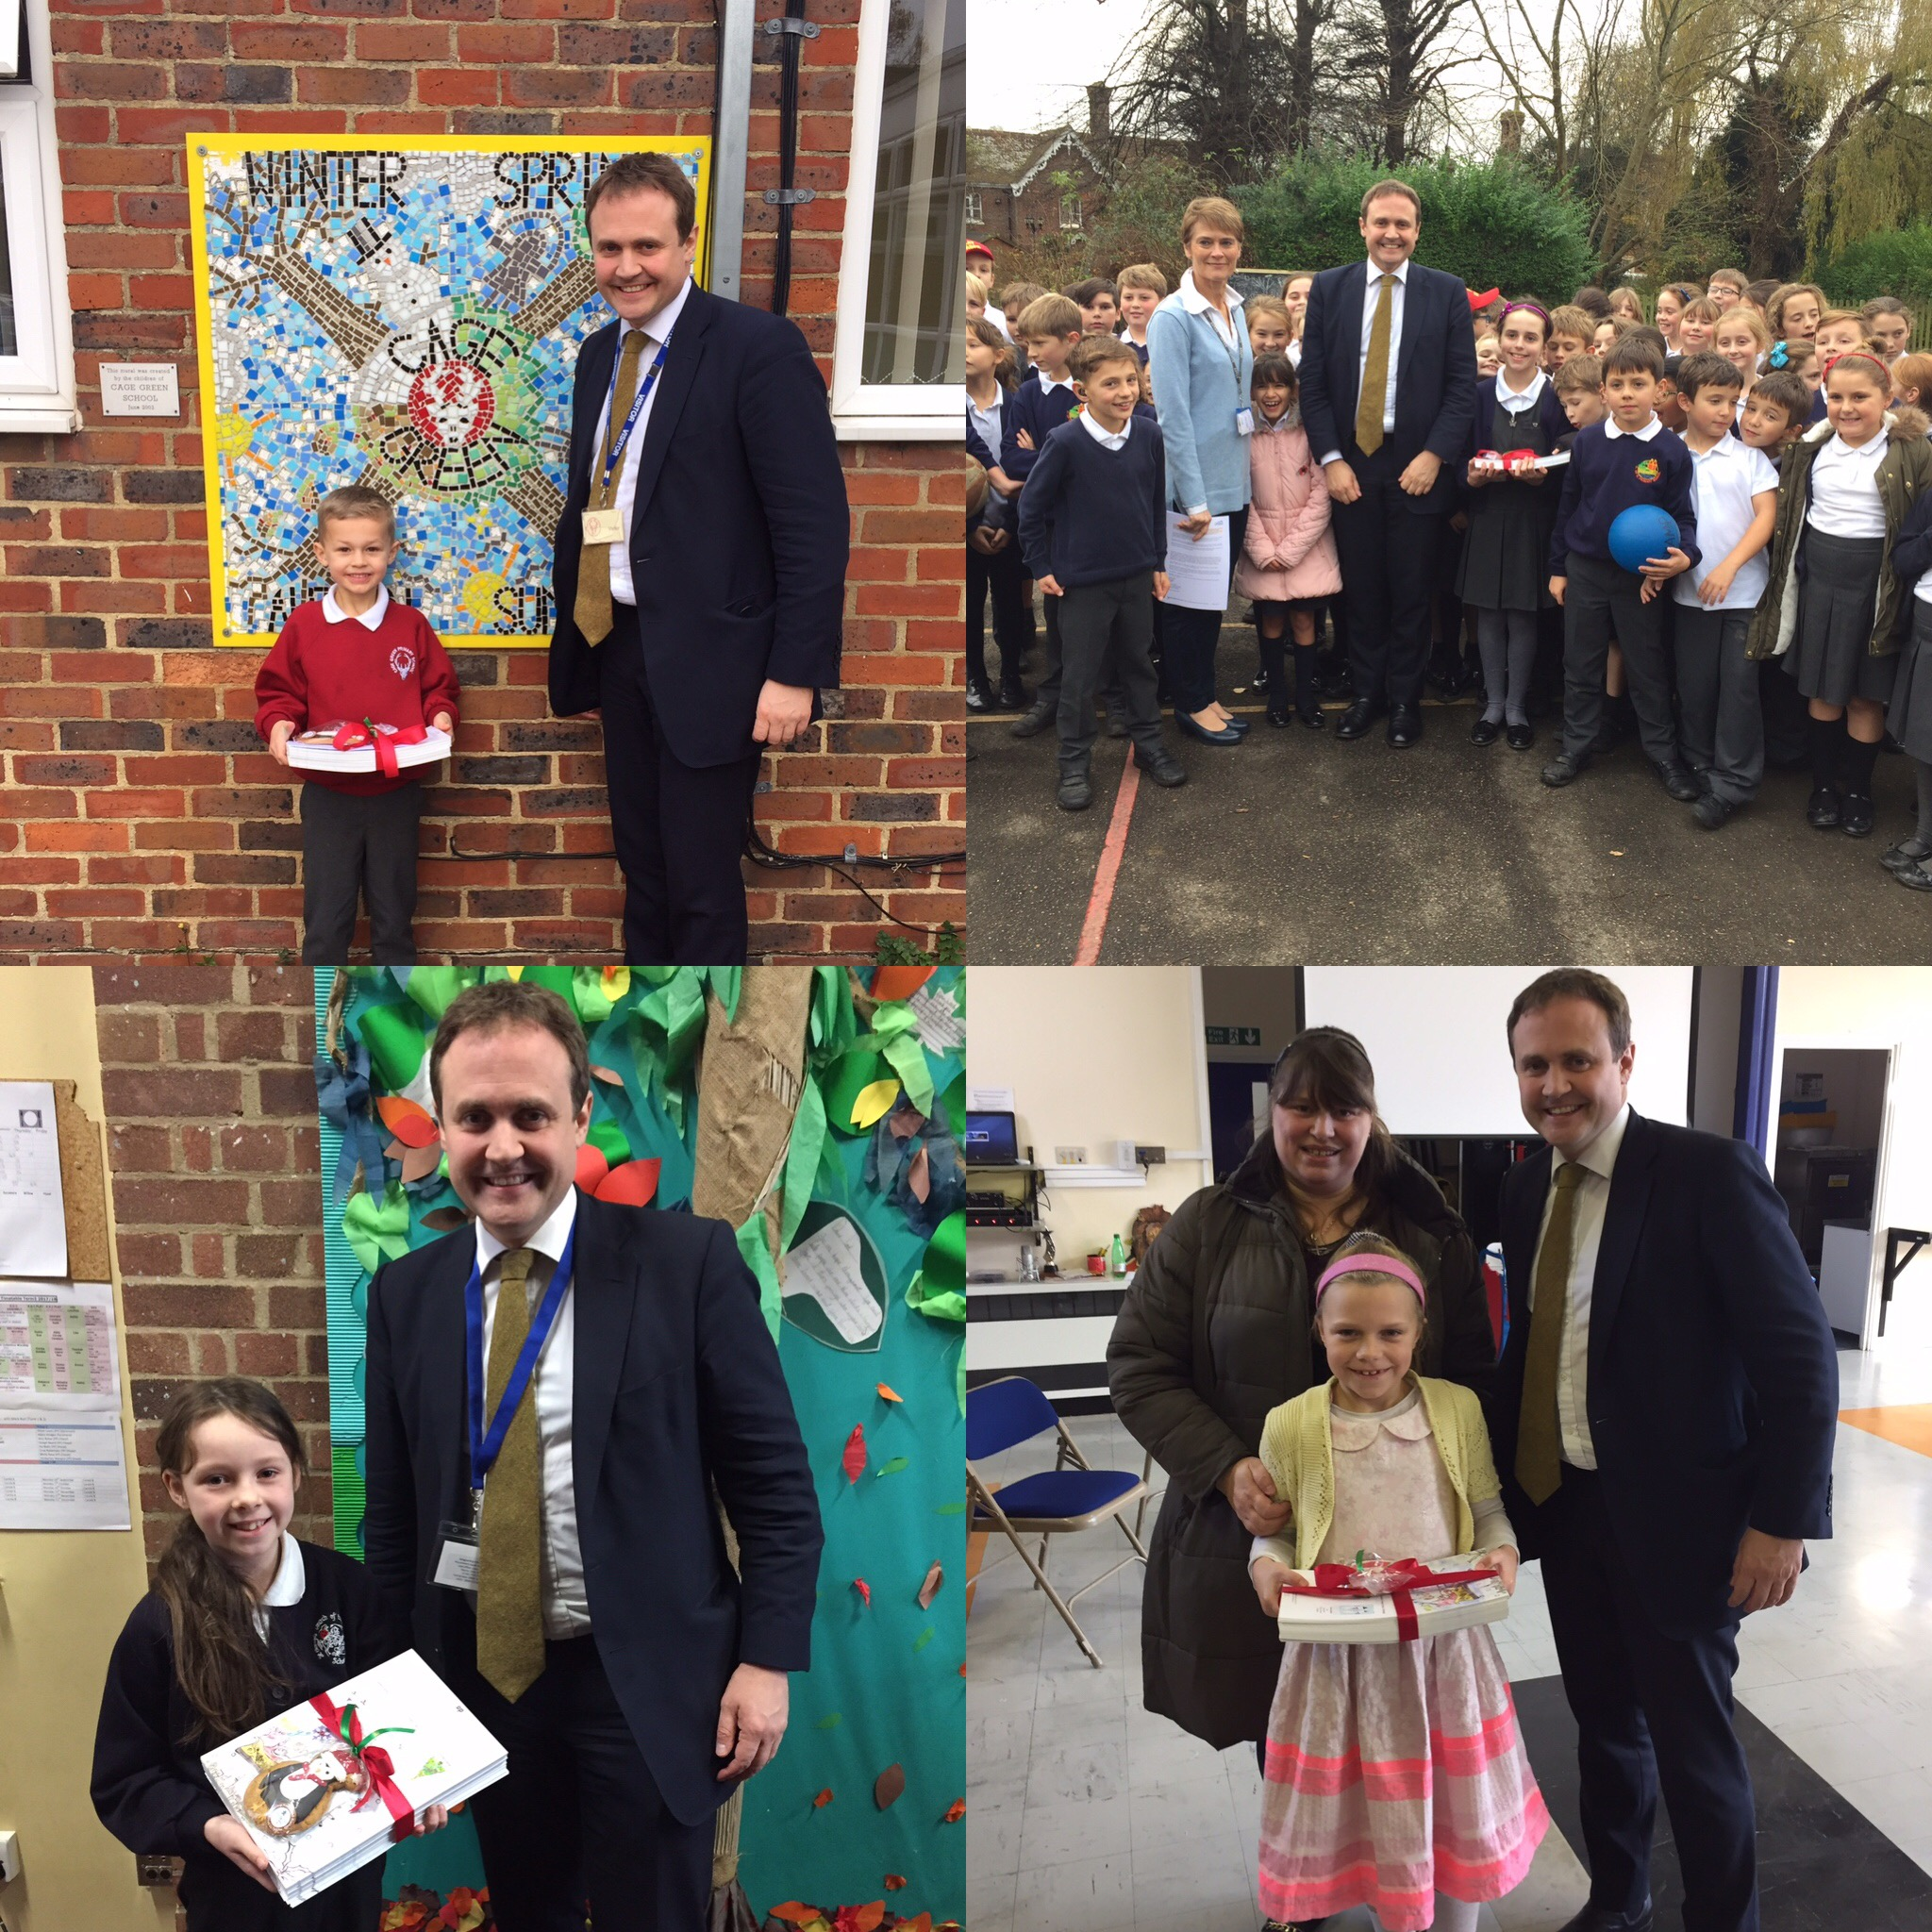 I've had a fantastic day surprising the winners of my Christmas card competition. I received hundreds of incredible designs so it was such a tough decision to choose a winner. But I am delighted to announce that the winning design was submitted by Charlotte from Longmead Community Primary School. Well done Charlotte! Massive congratulations also need to be given to Sky from St George's Primary School, Amelia from Wateringbury Primary School, and Charlie from Cage Green Primary School who were all highly commended winners. Your designs were brilliant! I look forward to welcoming them all to Parliament sometime in the New Year.